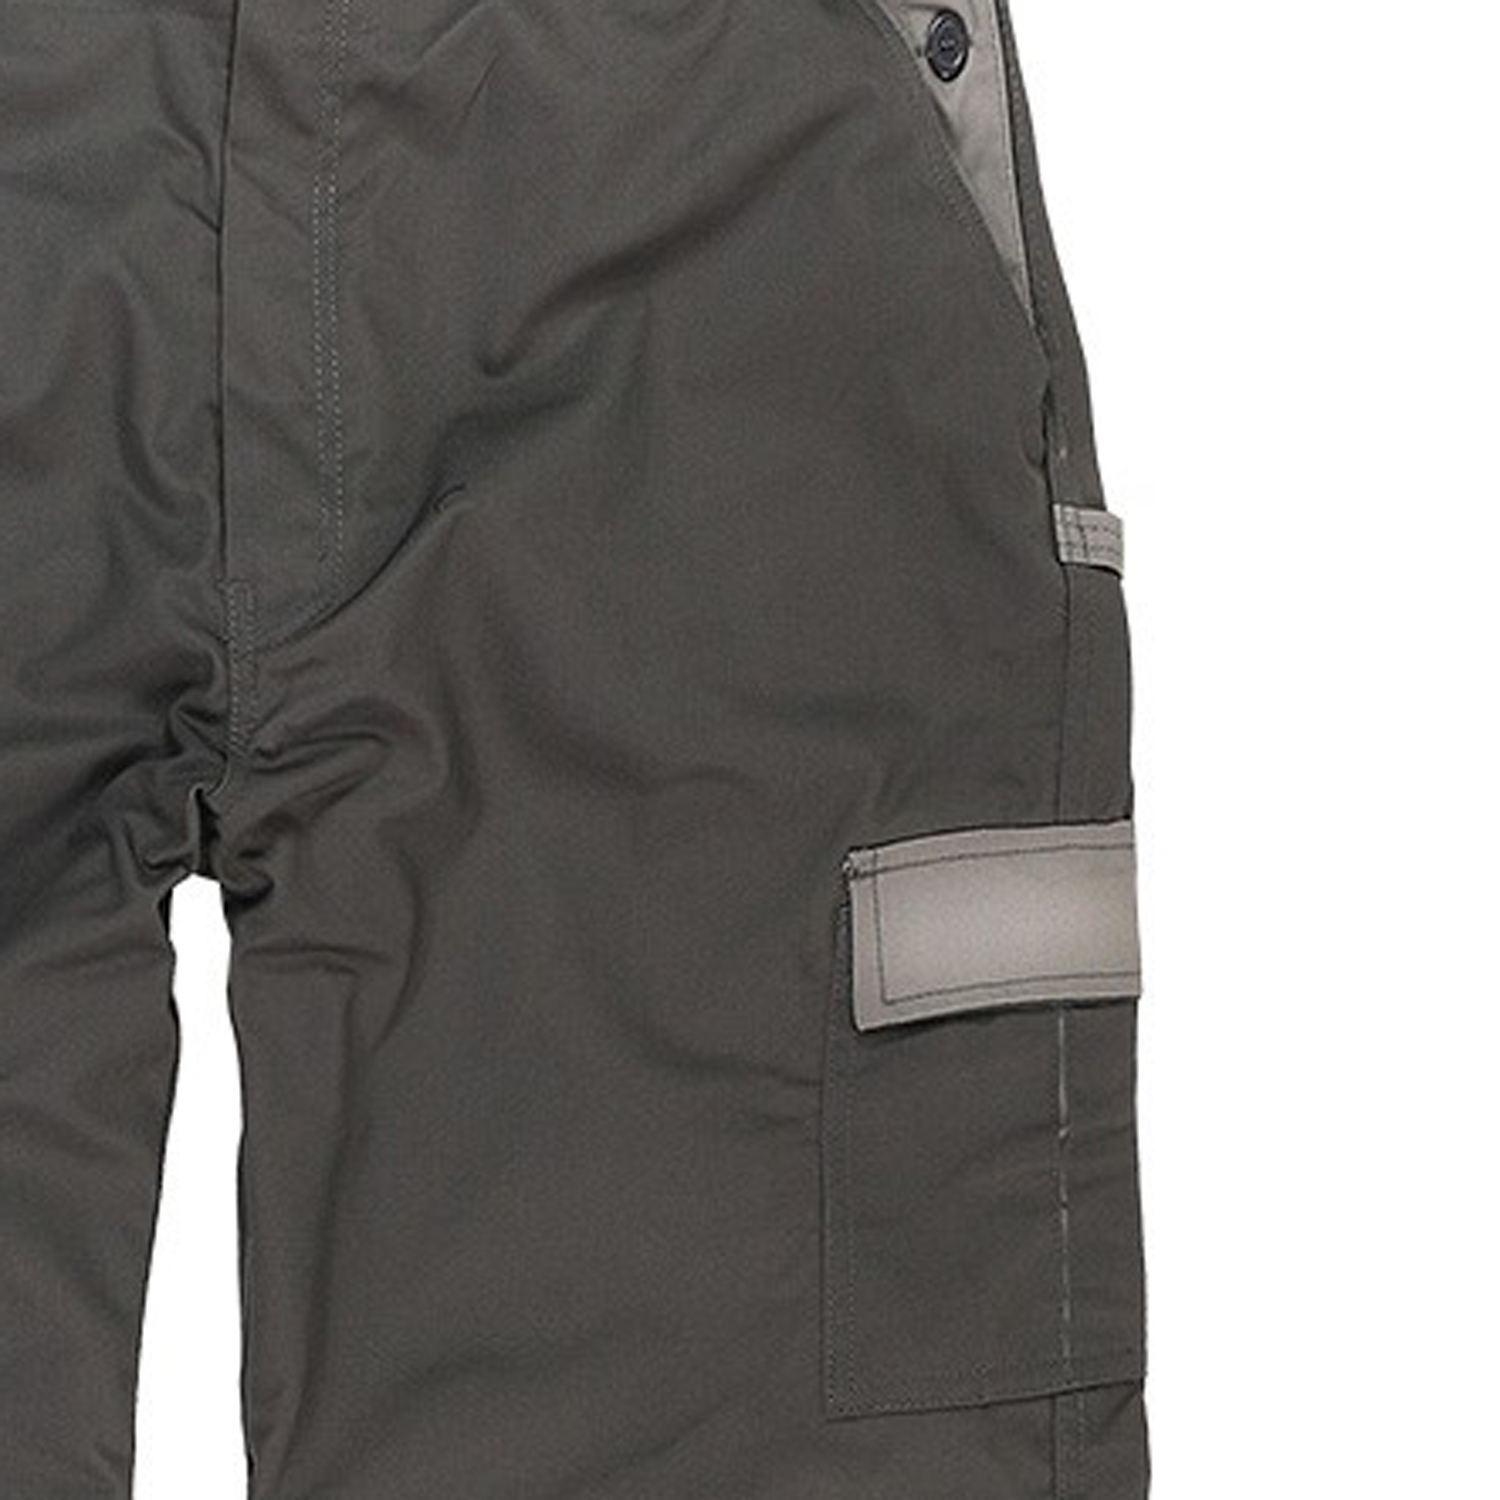 Detail Image to Workingclothes, Pants by PKA Klöcker in gray, large sizes up to 74